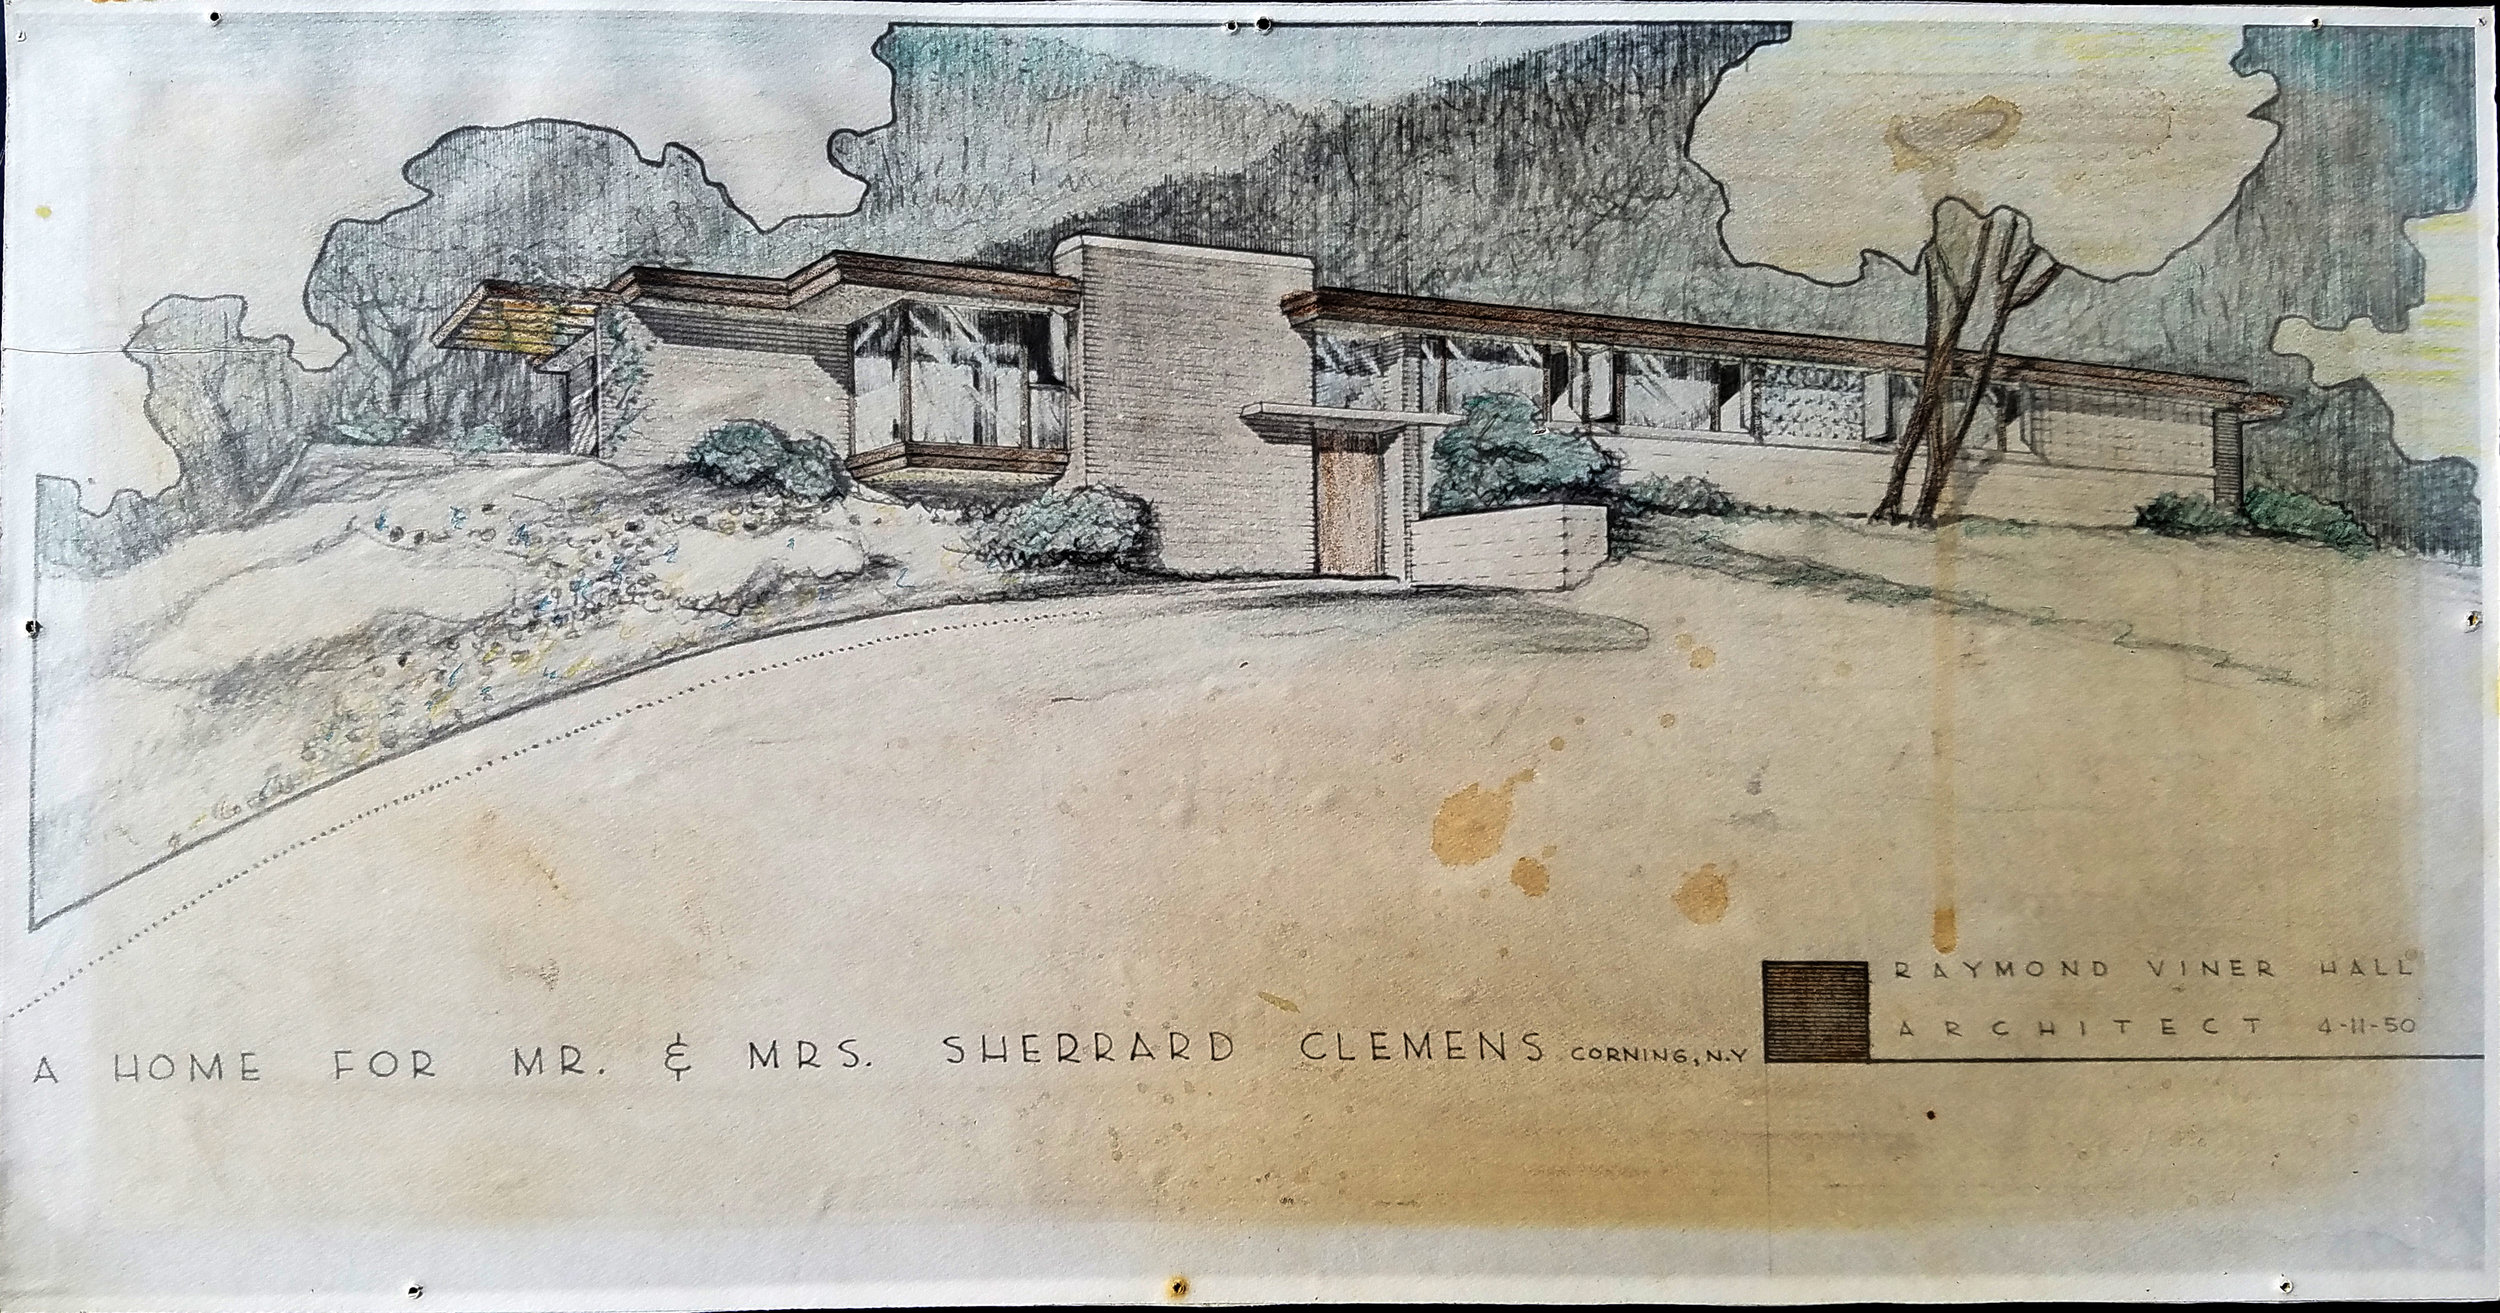 A copy of the original hand drawn rendering.